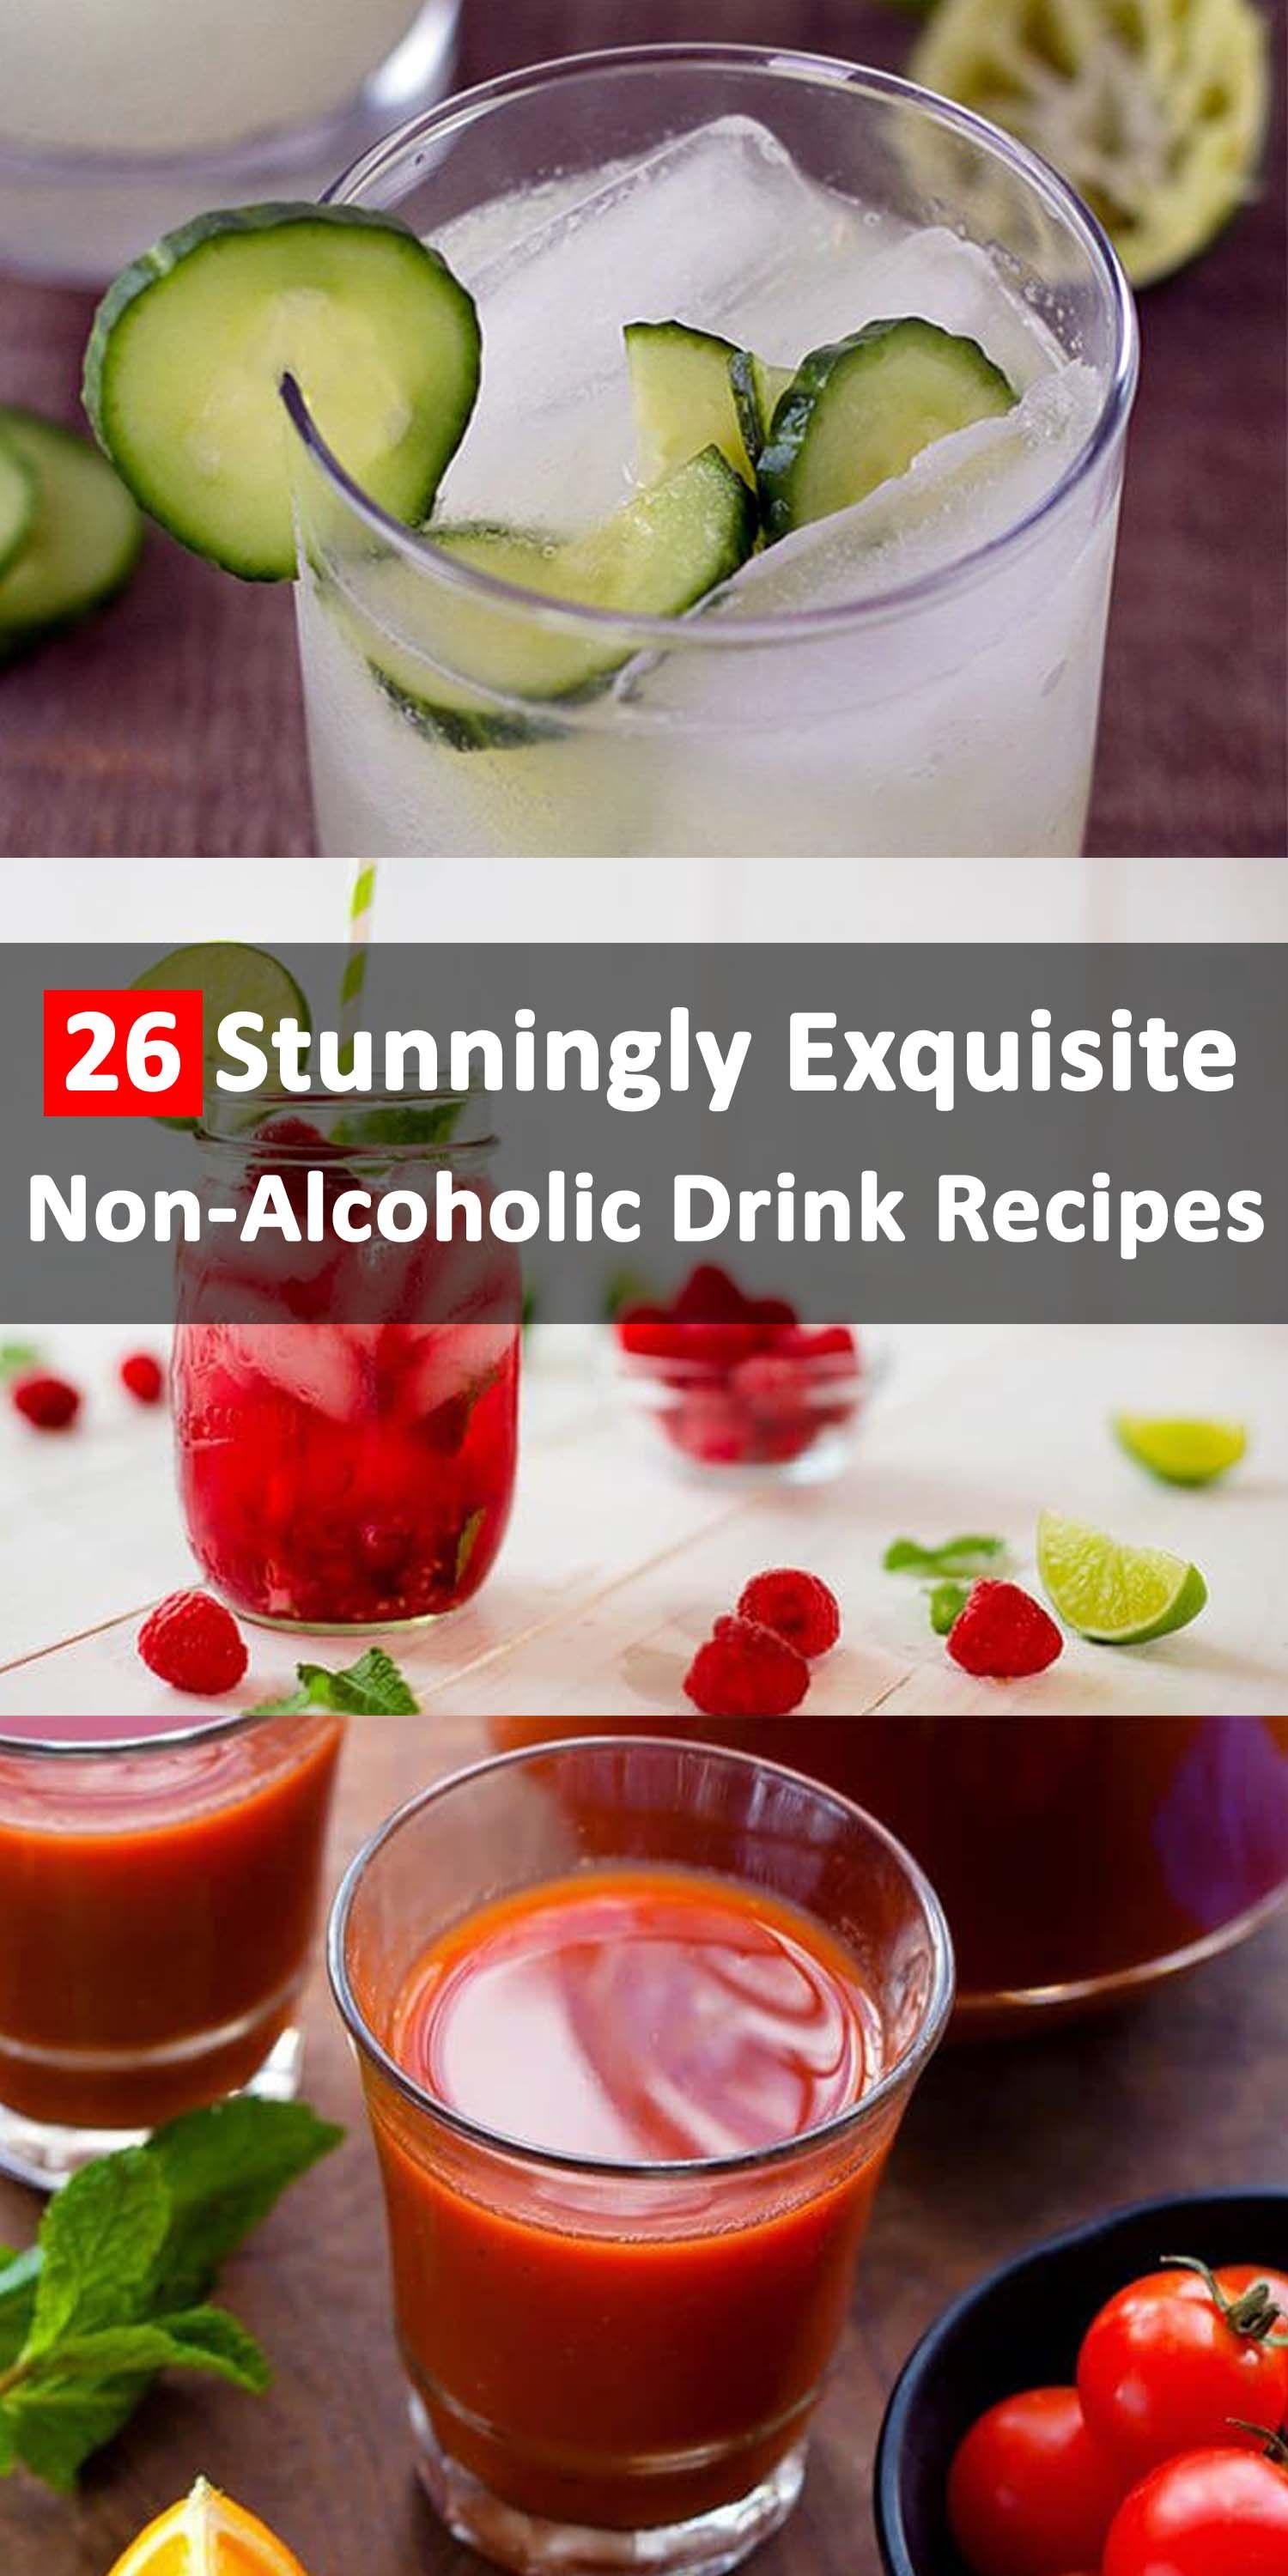 26 Stunningly Exquisite Non Alcoholic Best Drink Recipes With Images Drinks Alcohol Recipes Food And Drink Non Alcoholic Drinks